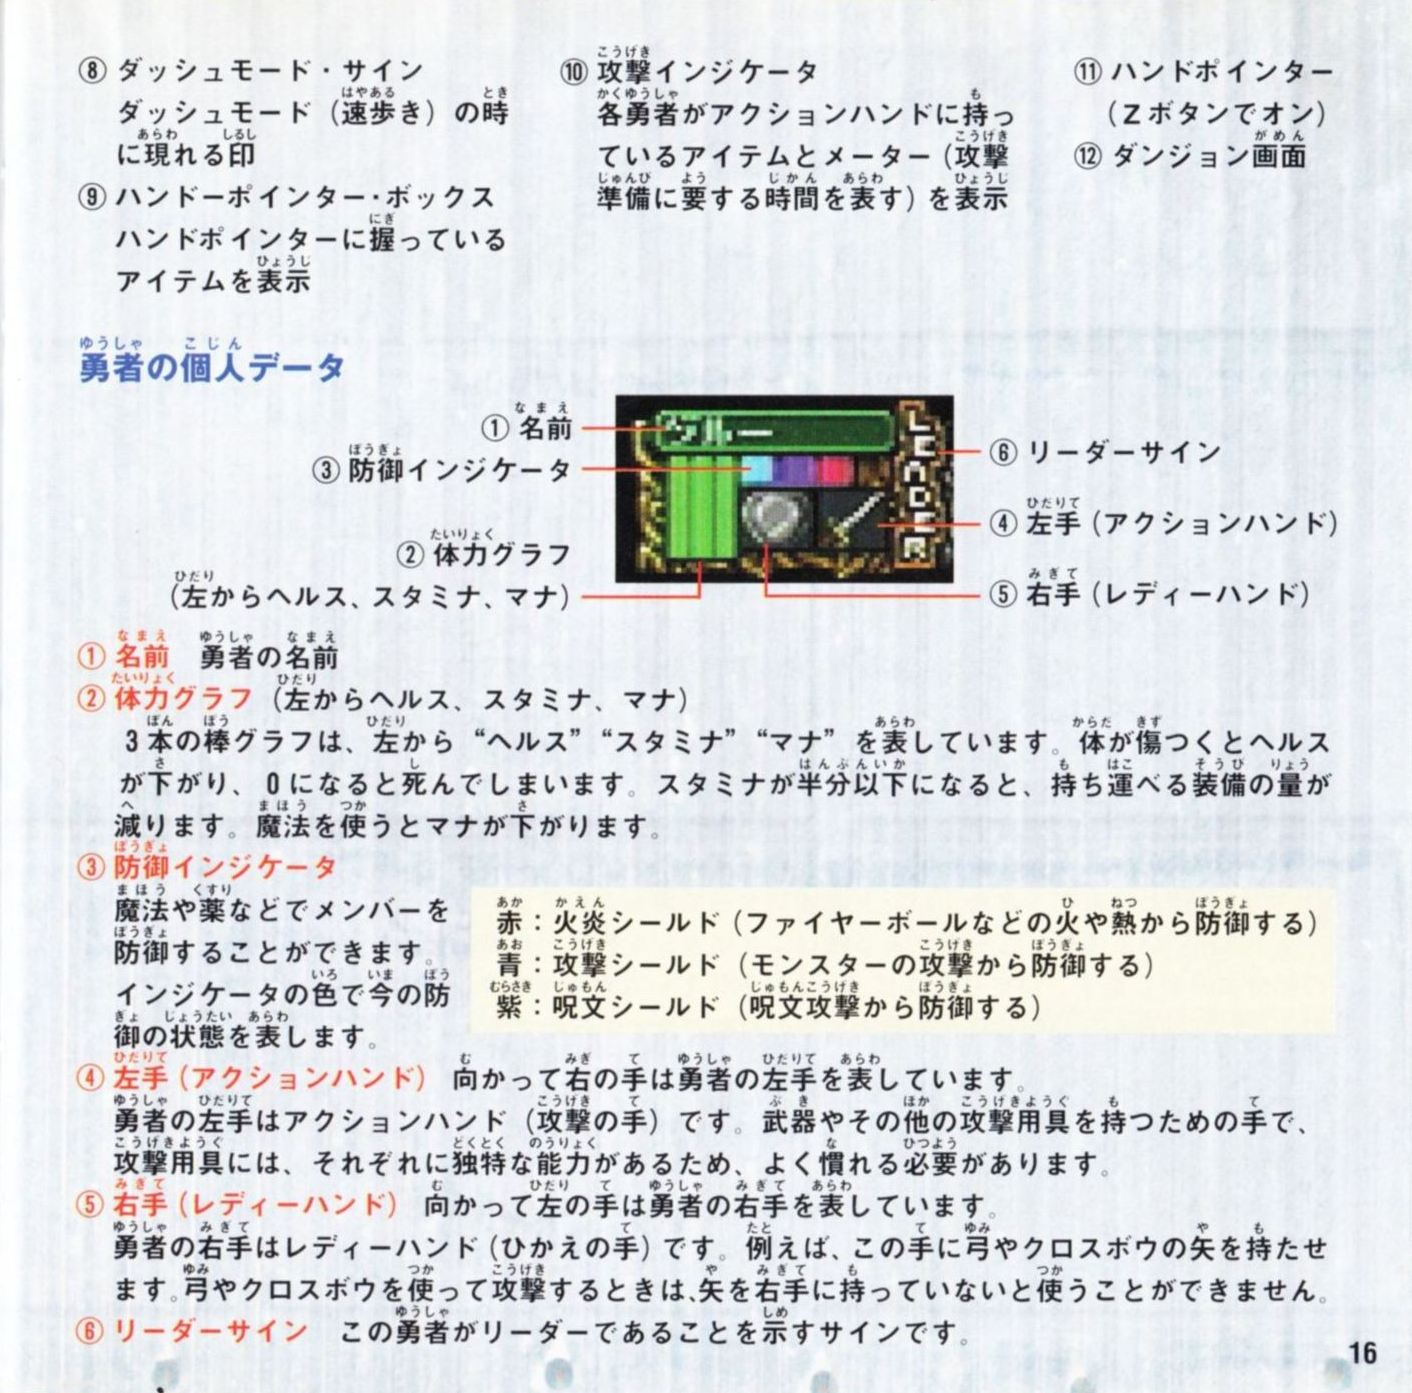 Game - Dungeon Master Nexus - JP - Sega Saturn - Booklet - Page 017 - Scan